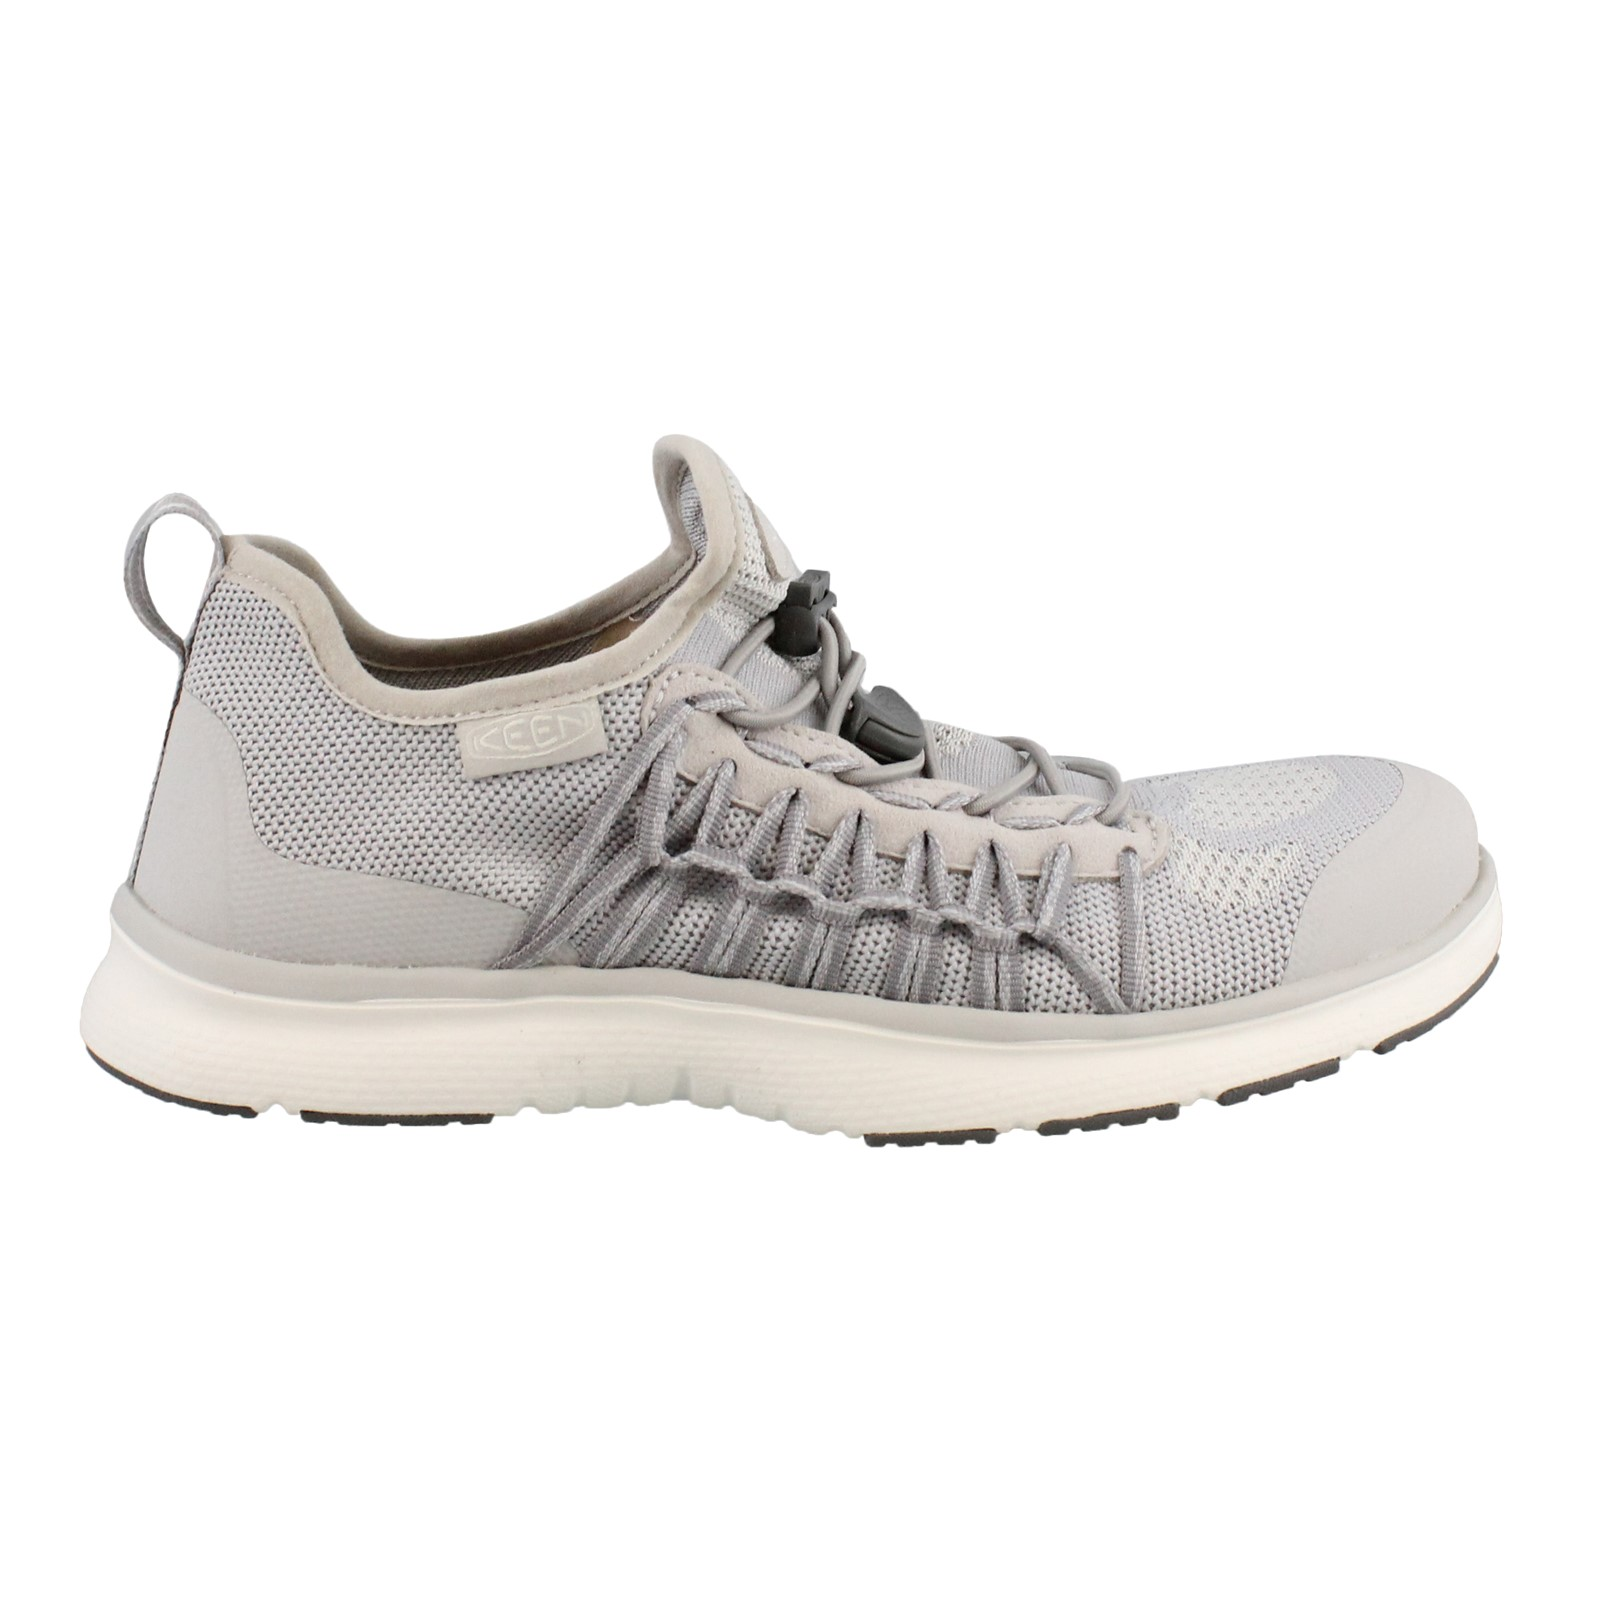 Women's Keen, Exo Uneek Shoes